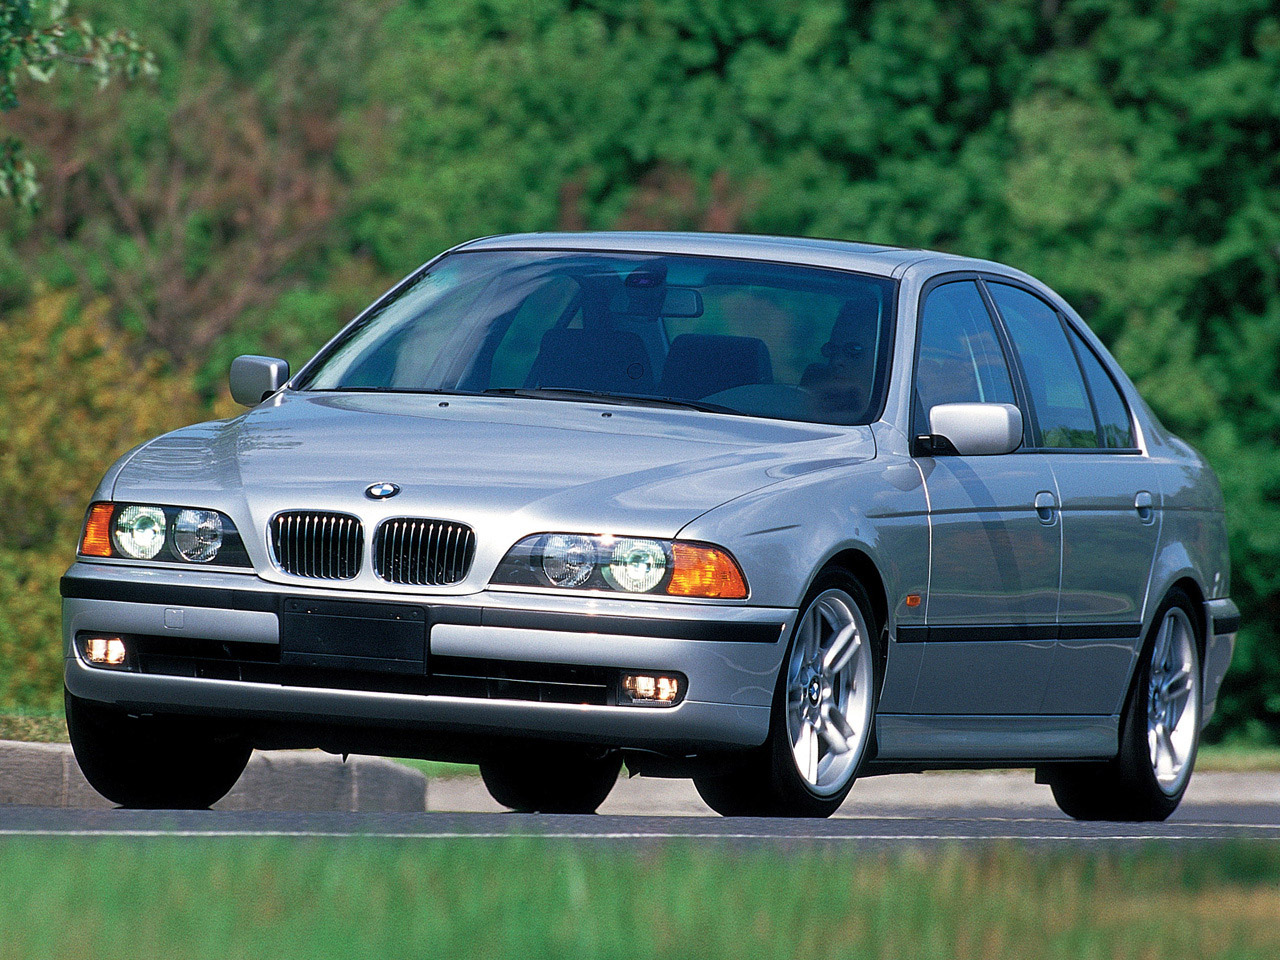 BMW 5 series 540i 1996 photo - 4